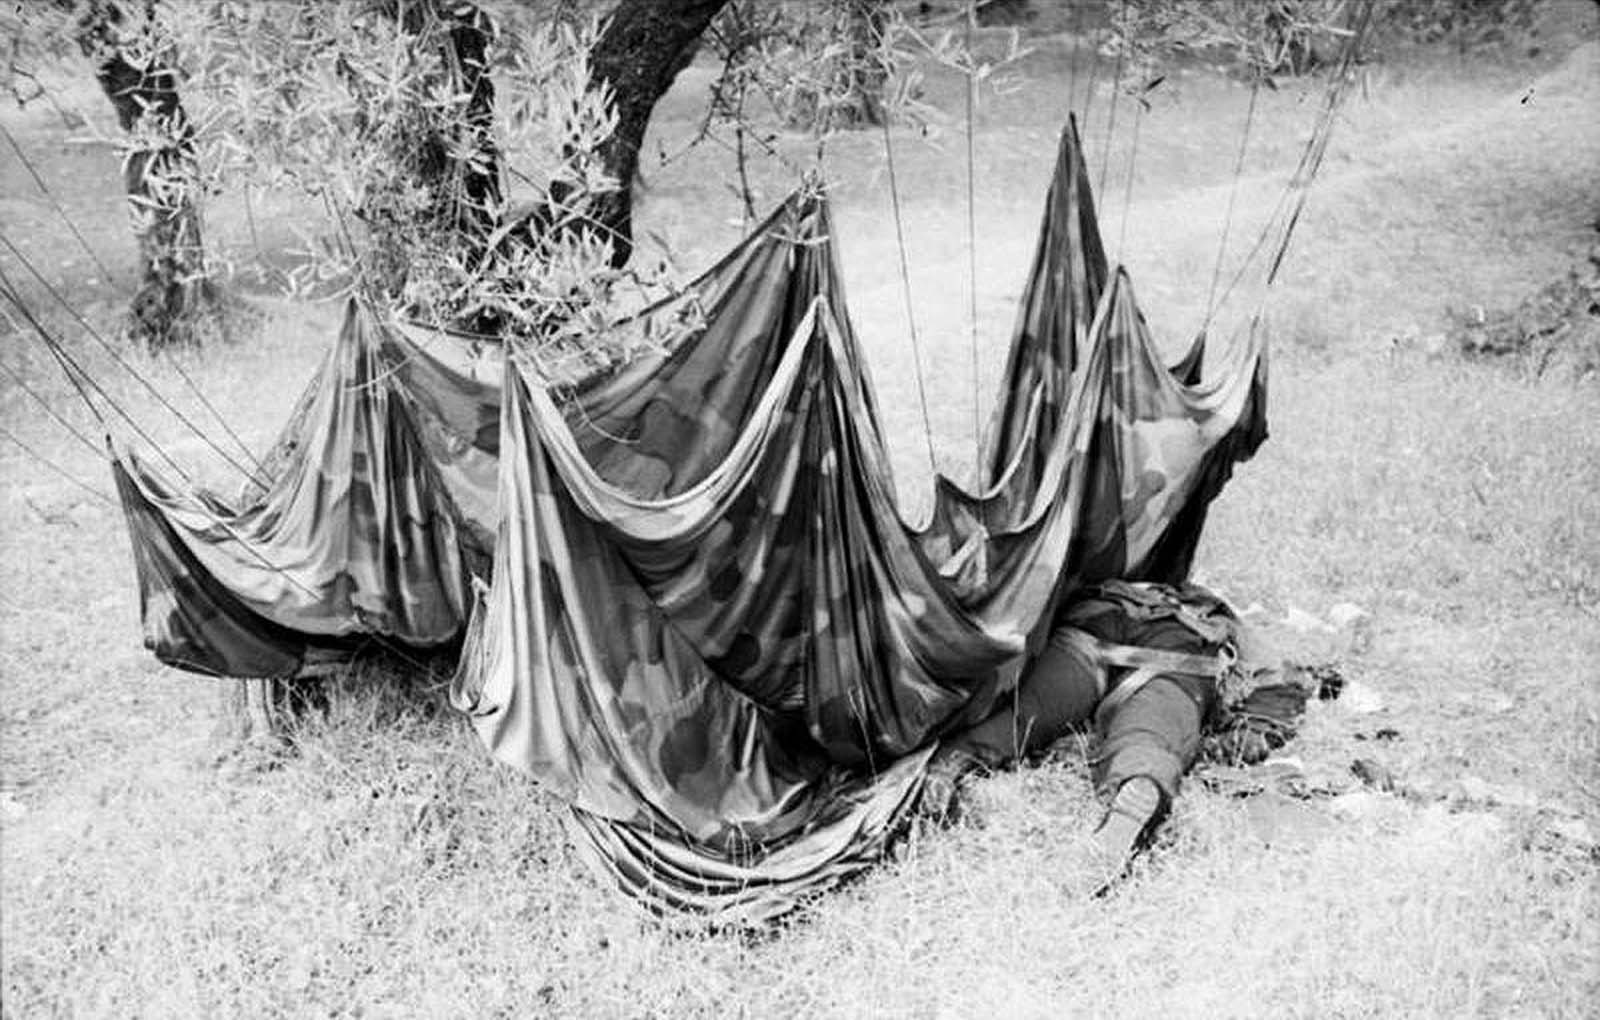 A fallen paratrooper and his parachute, on the island of Crete, in early 1941.